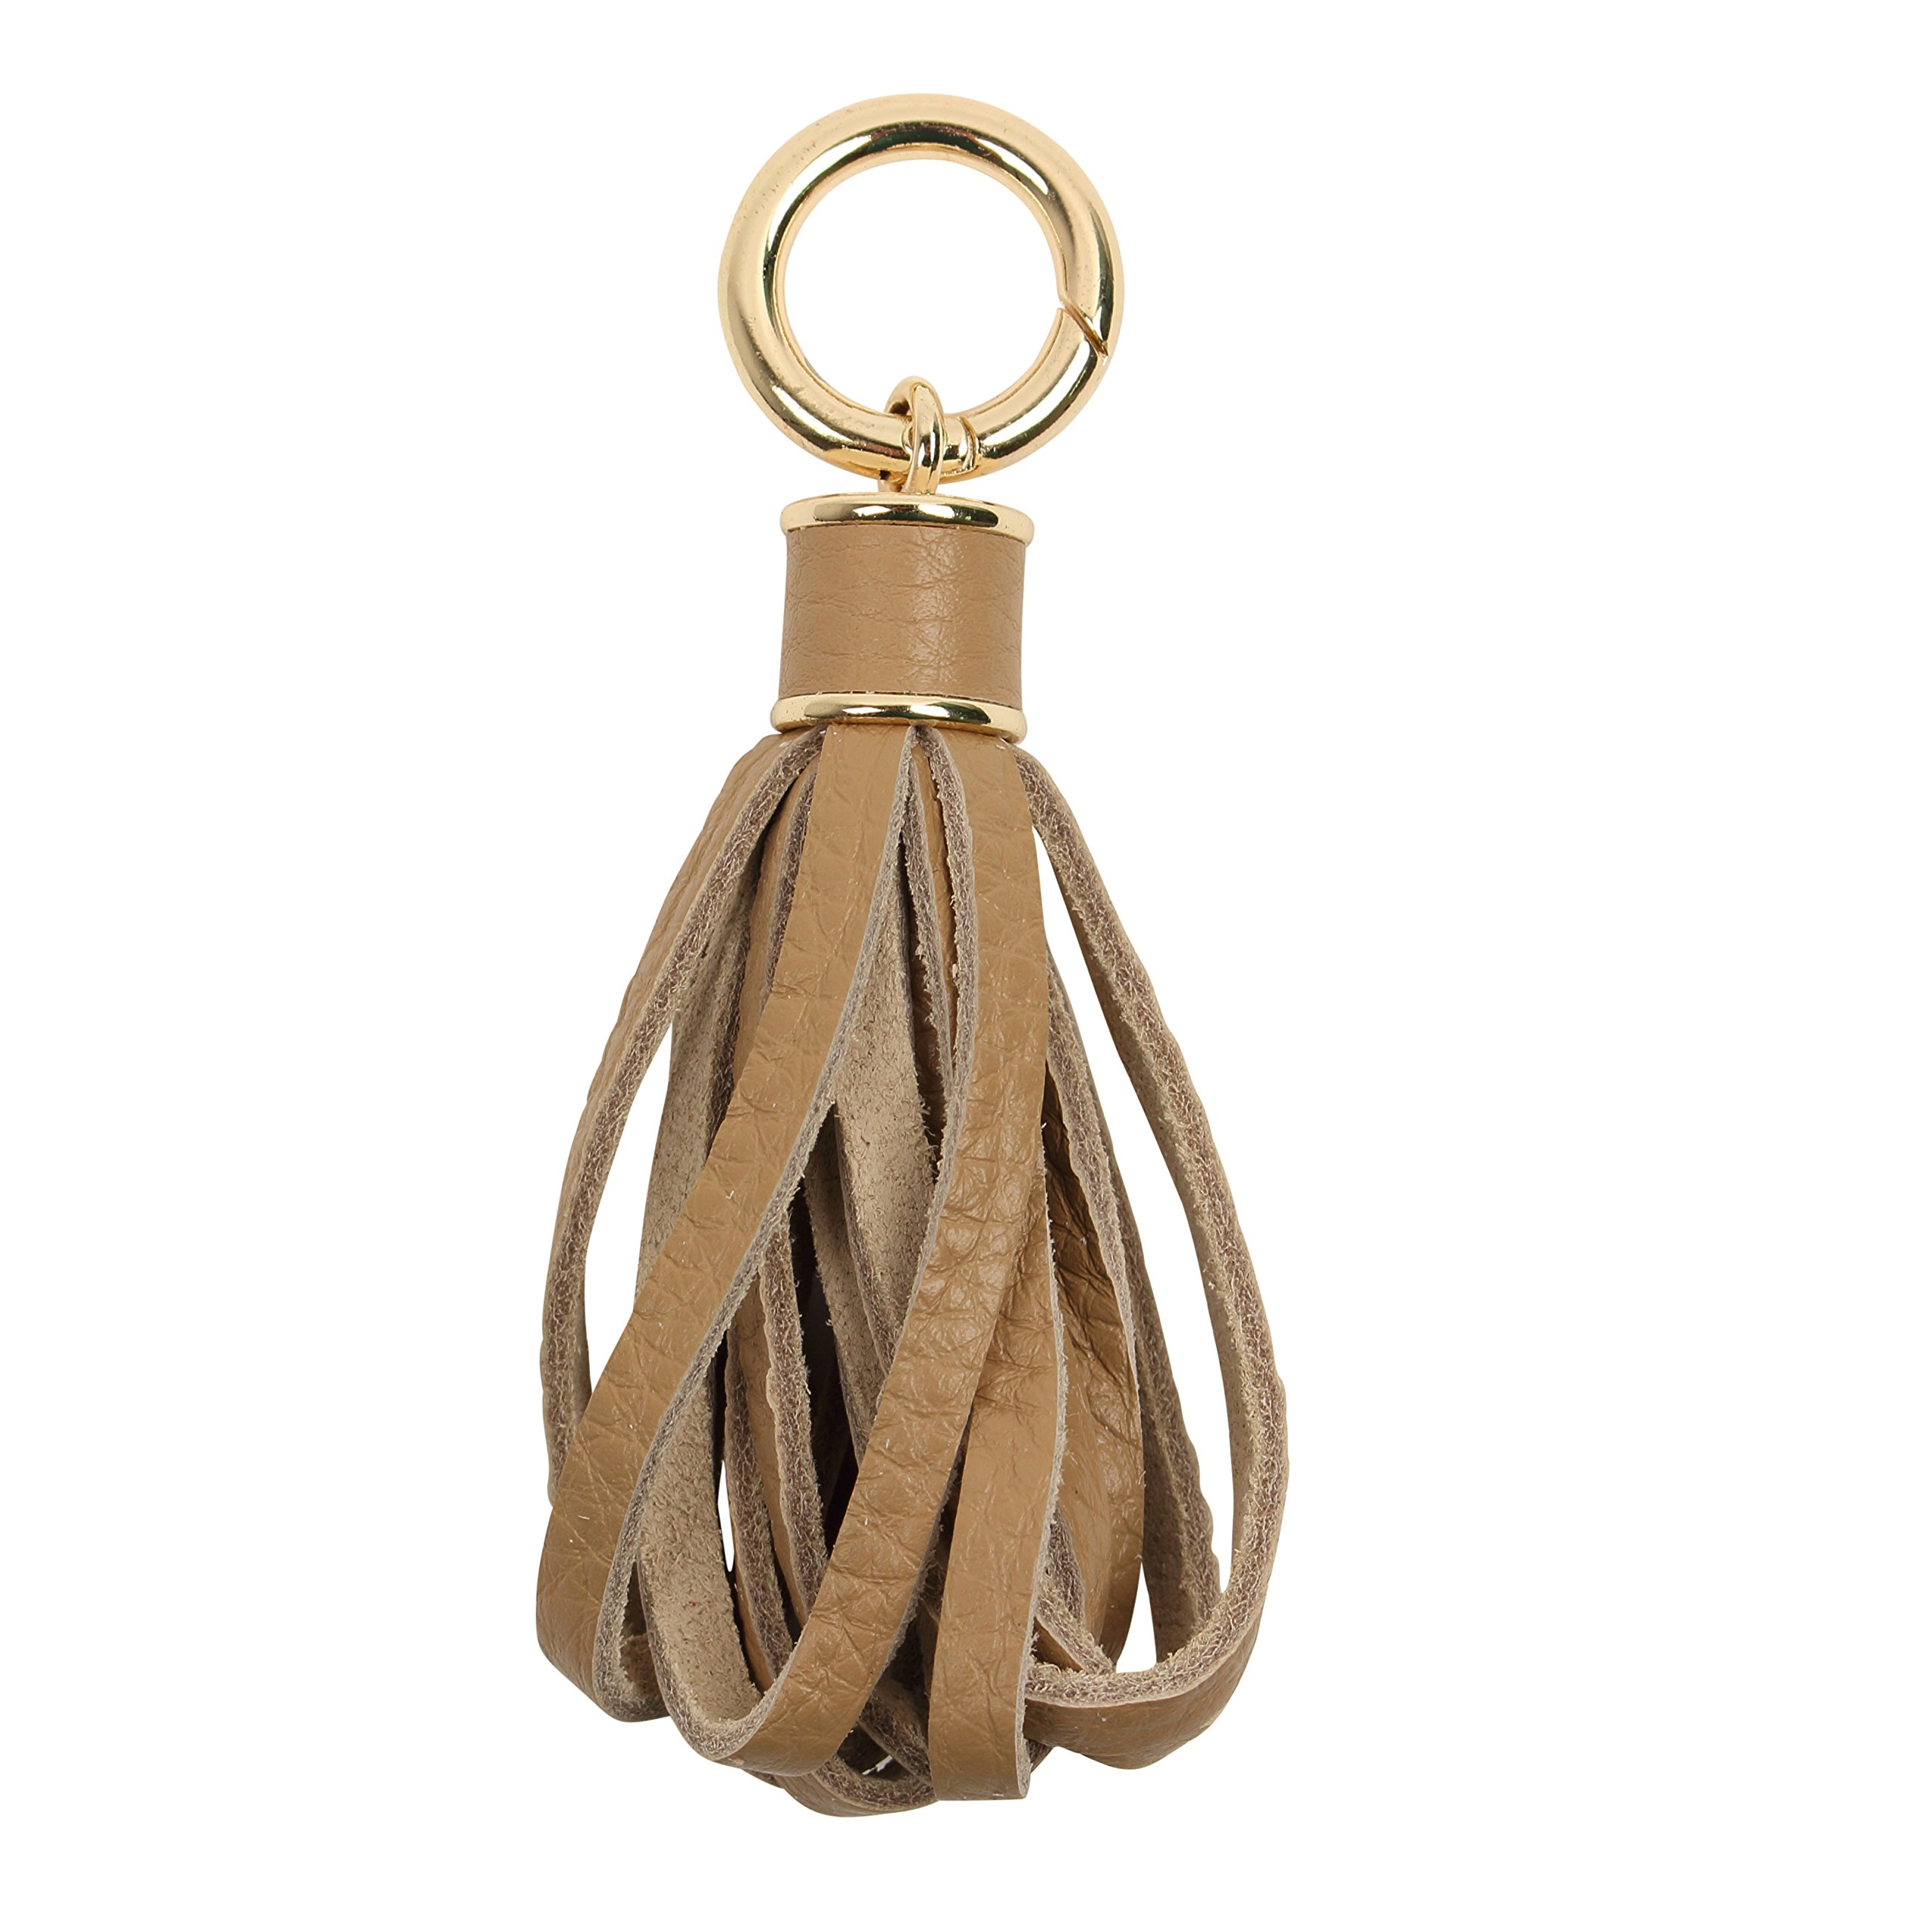 Women Genuine Leather Tassel Charm For Handy Handbag Purse Bag Wallet Smartphone Key Rings Accessories (D-beige)